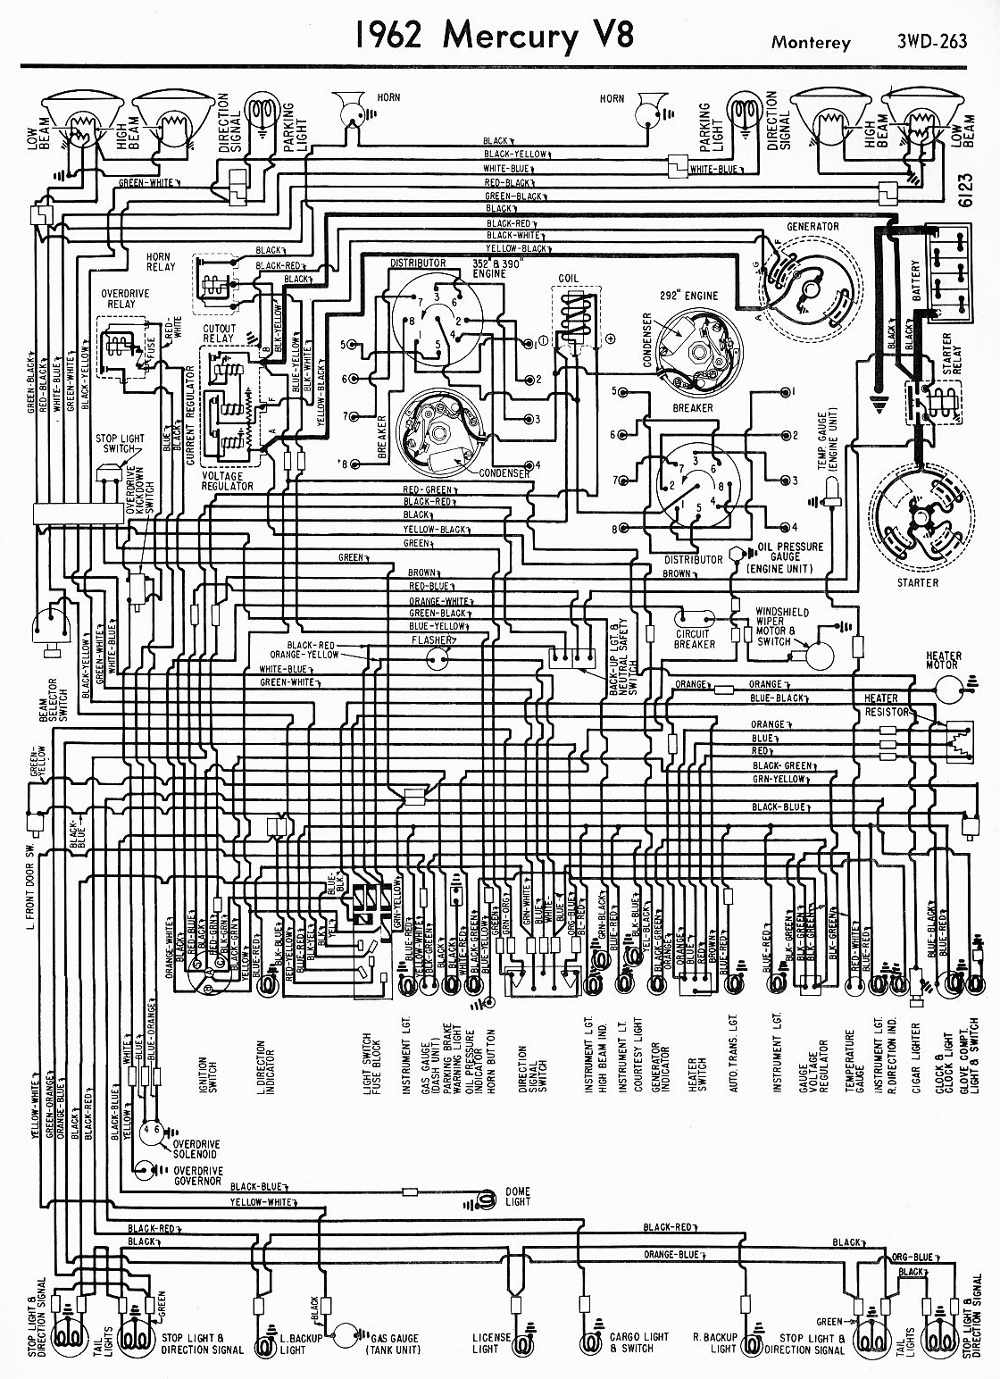 1968 Ford Galaxie 500 Wiring Diagram | Wiring Liry  Galaxie Wiring Diagrams on 1931 model a wiring diagram, 1998 cherokee wiring diagram, 1964 galaxie exhaust system, basic turn signal wiring diagram, 1951 plymouth cranbrook wiring diagram, 1956 mercury monterey wiring diagram, 1939 ford truck wiring diagram, 1968 mustang wiring diagram, 1971 cuda wiring diagram, 1964 ford ignition switch diagram, 1971 gto wiring diagram, 1966 mustang wiring diagram, 1954 chevy bel air wiring diagram, 1949 ford custom wiring diagram, 1964 galaxie brochure, 1964 galaxie parts, automotive turn signal wiring diagram, 1950 ford custom wiring diagram, 1953 mercury monterey wiring diagram, 1929 model a wiring diagram,